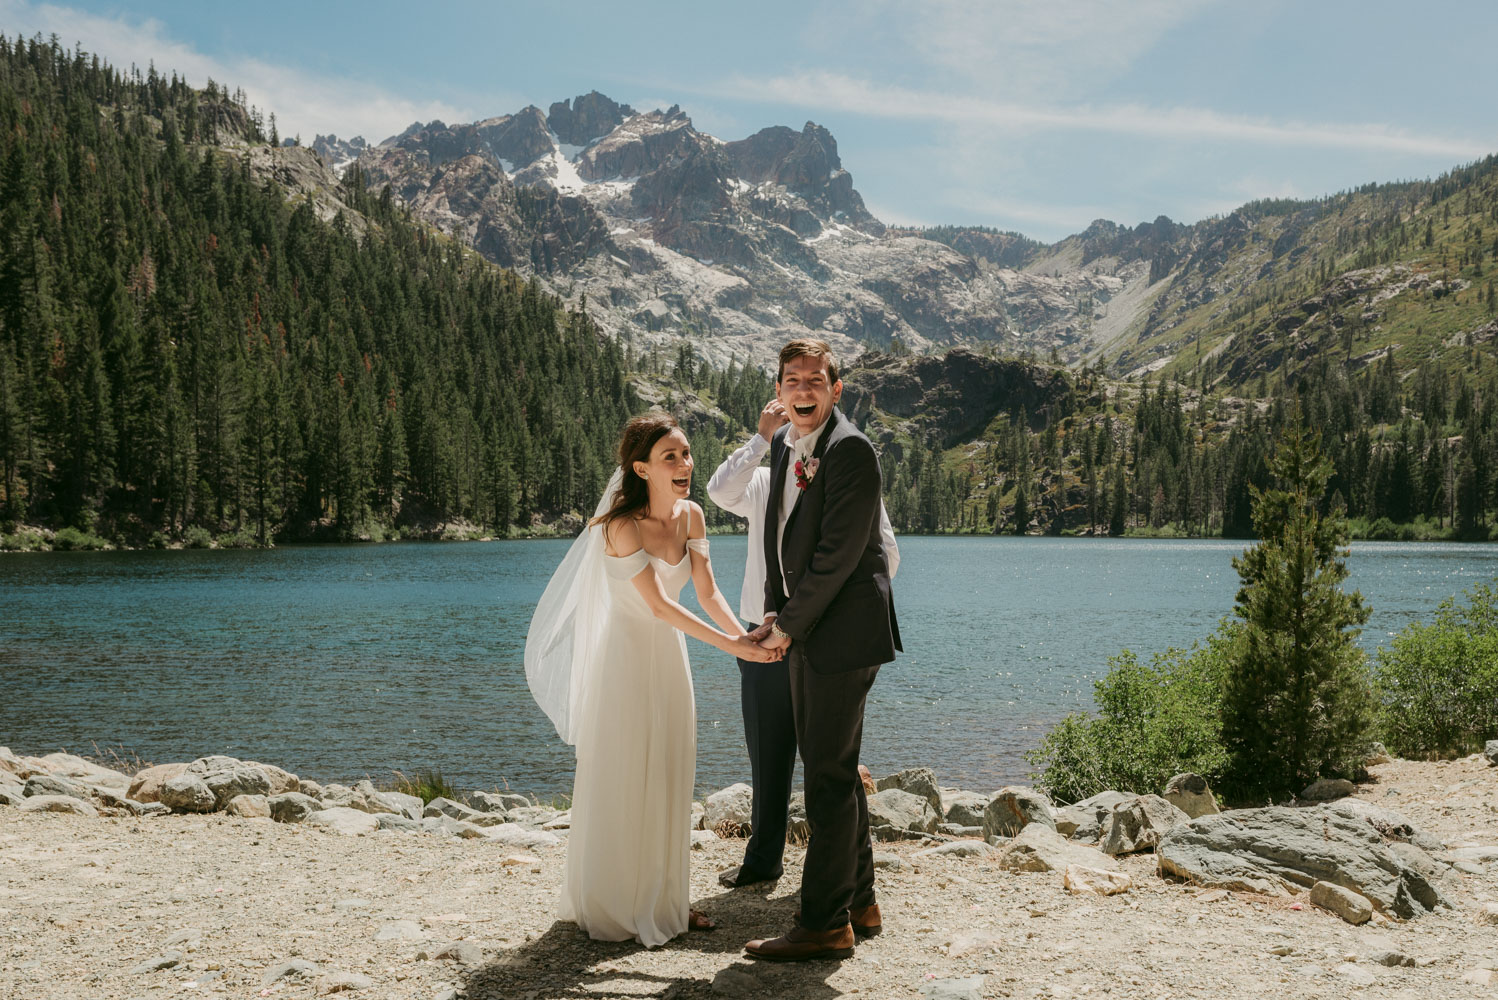 Elopement in the sierras photo, couple holding hands during the ceremony photo